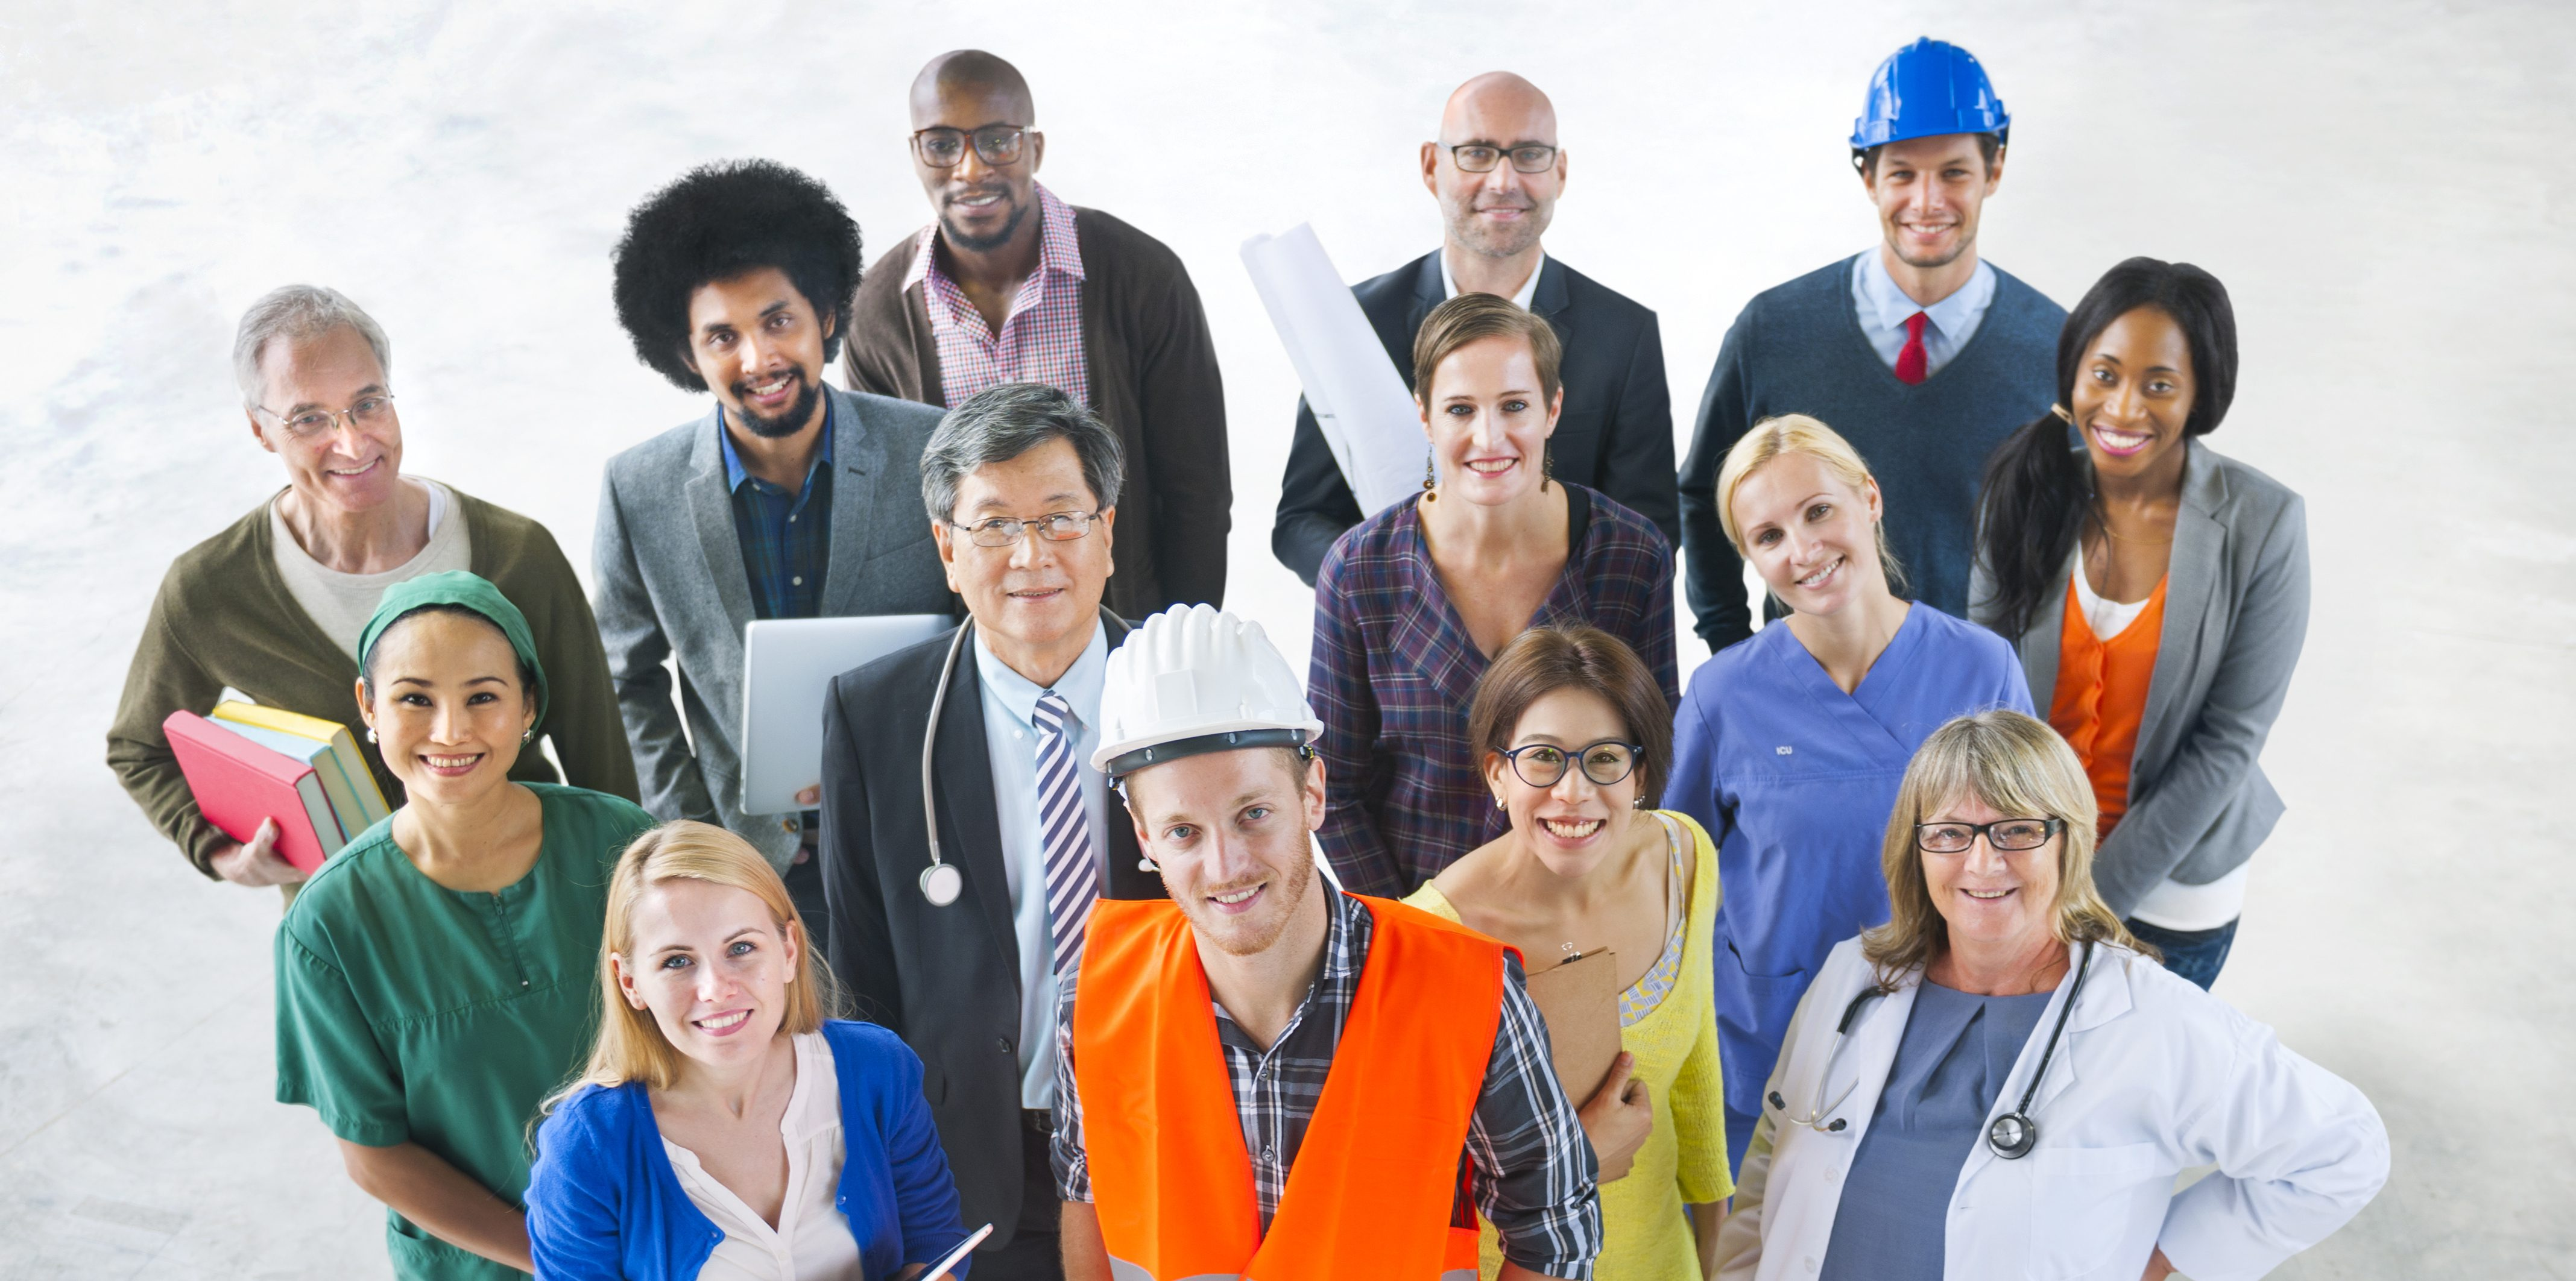 diverse_people_with_different_jobs_credit_rawpixel.jpg